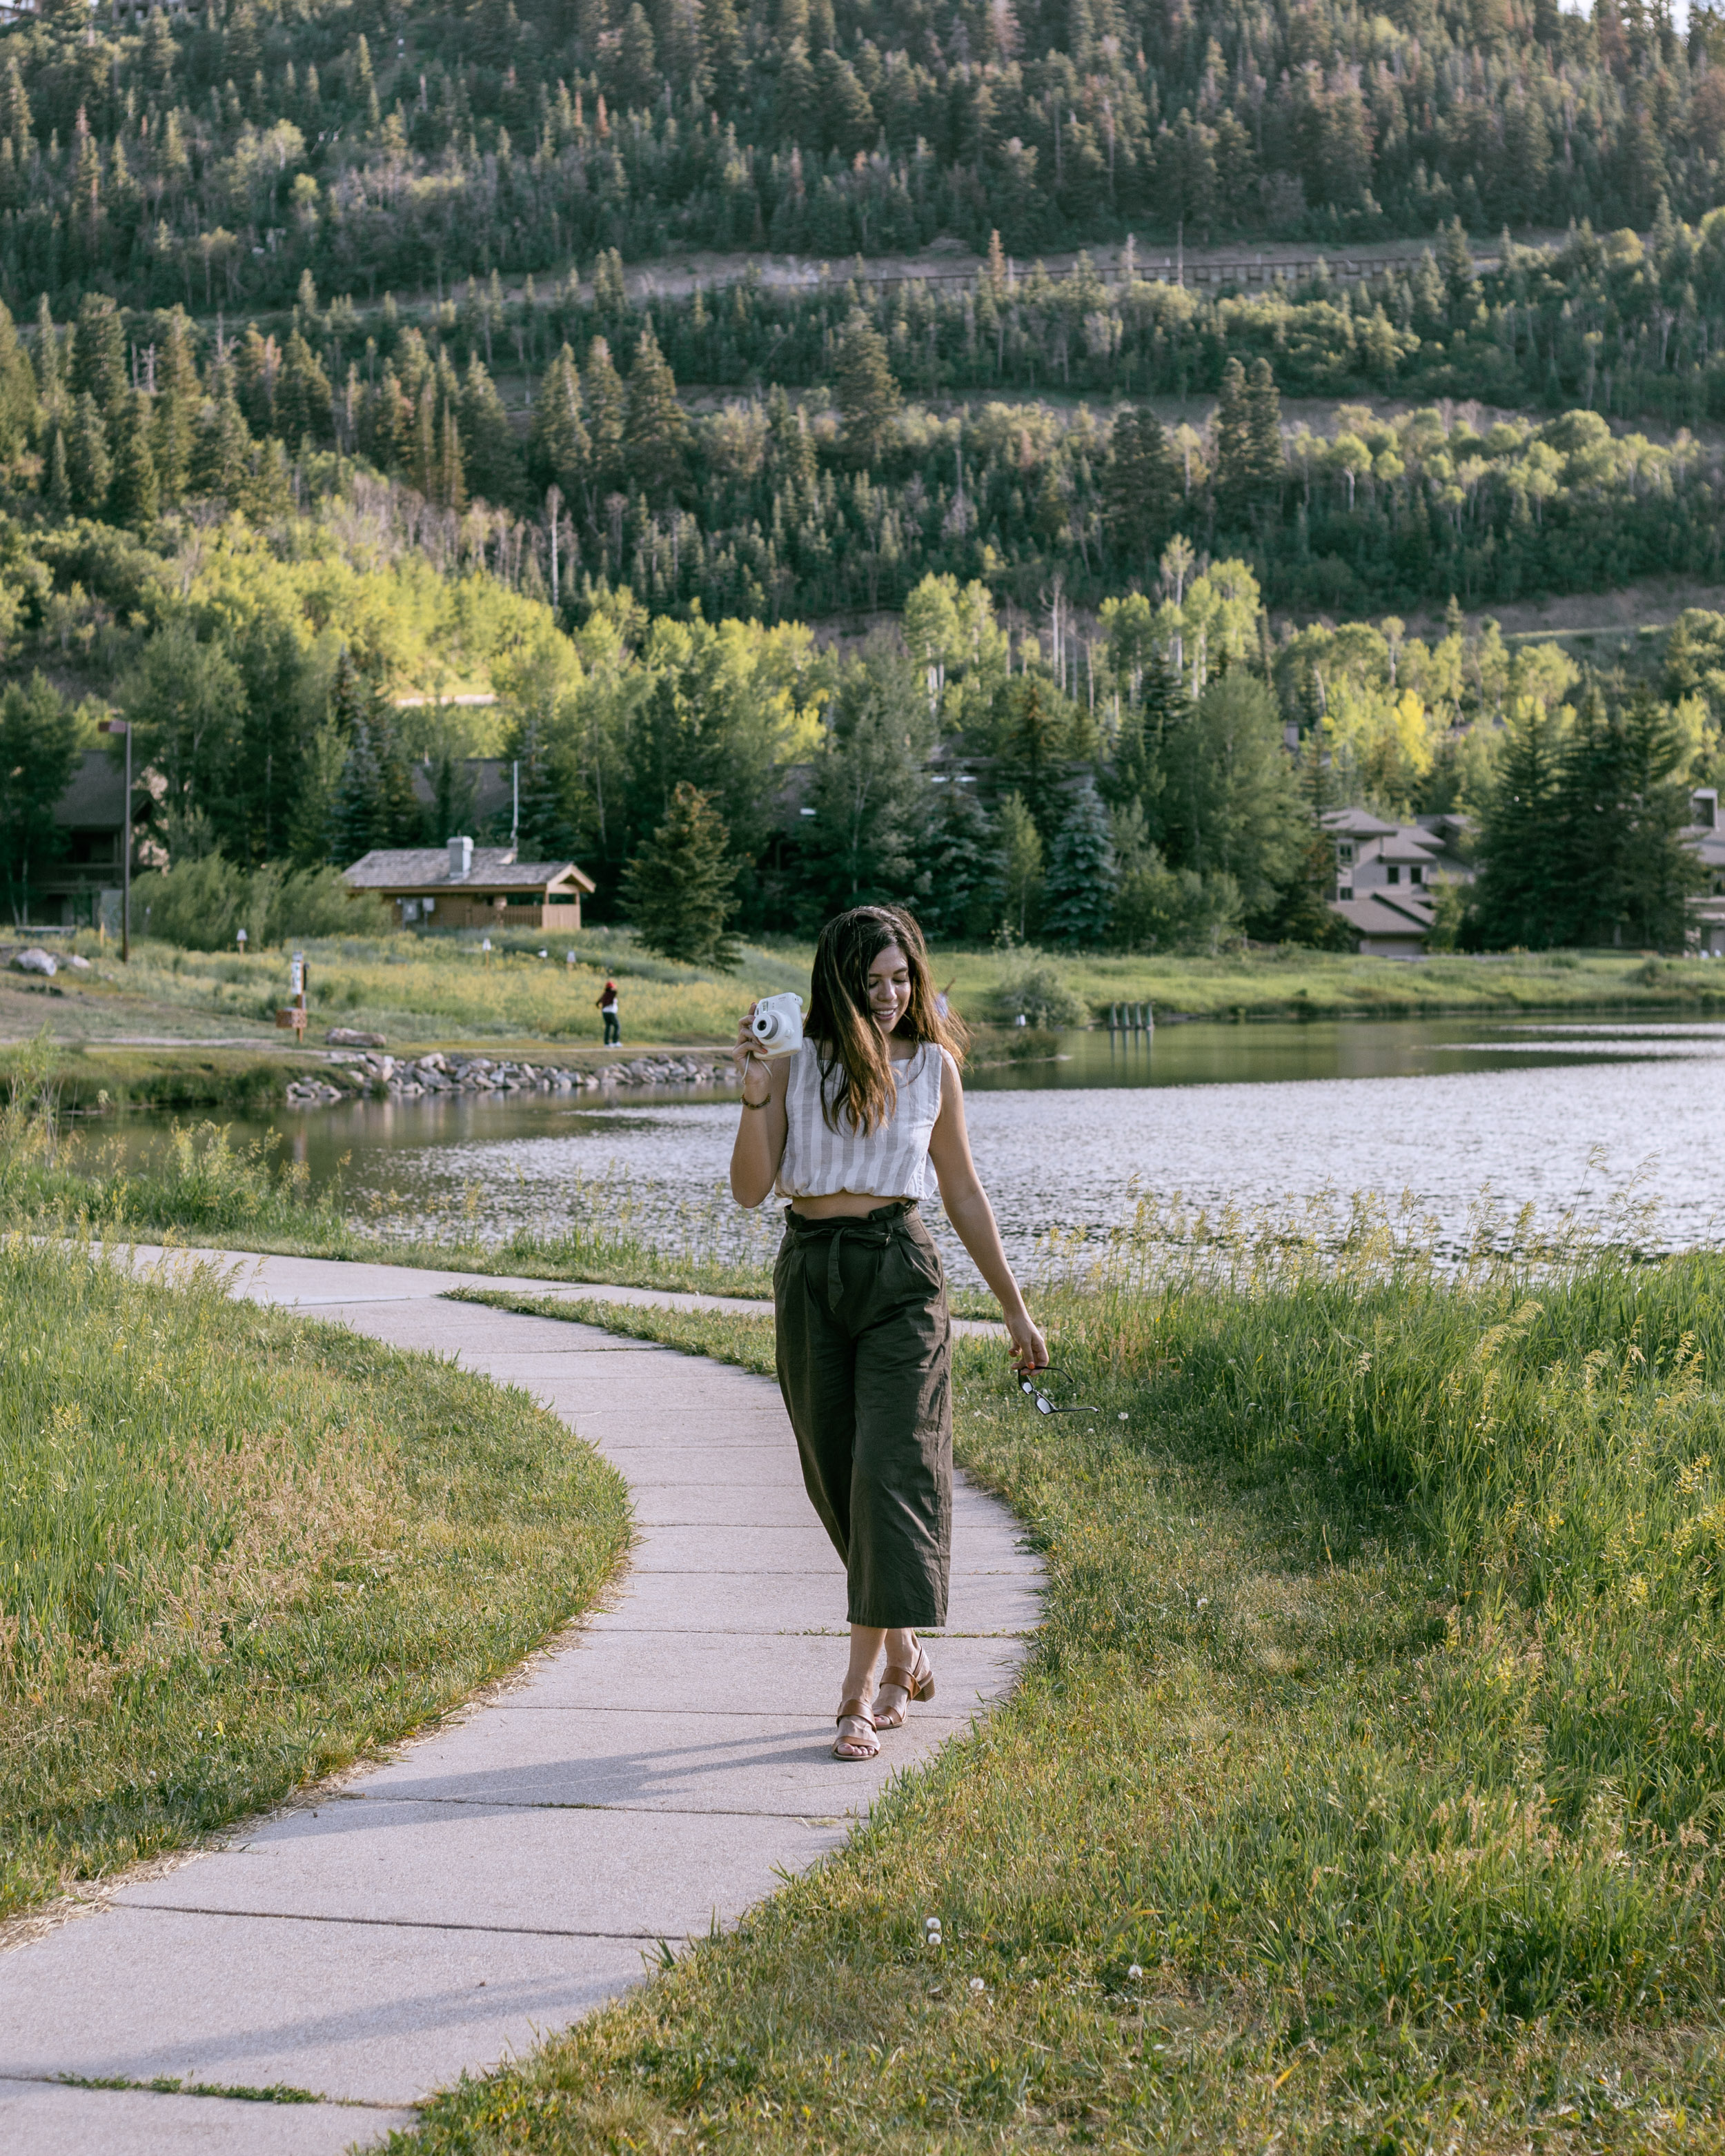 Rachel Off Duty: Where to Stay in Park City, Utah: The Lodges at Deer Valley Hotel Review